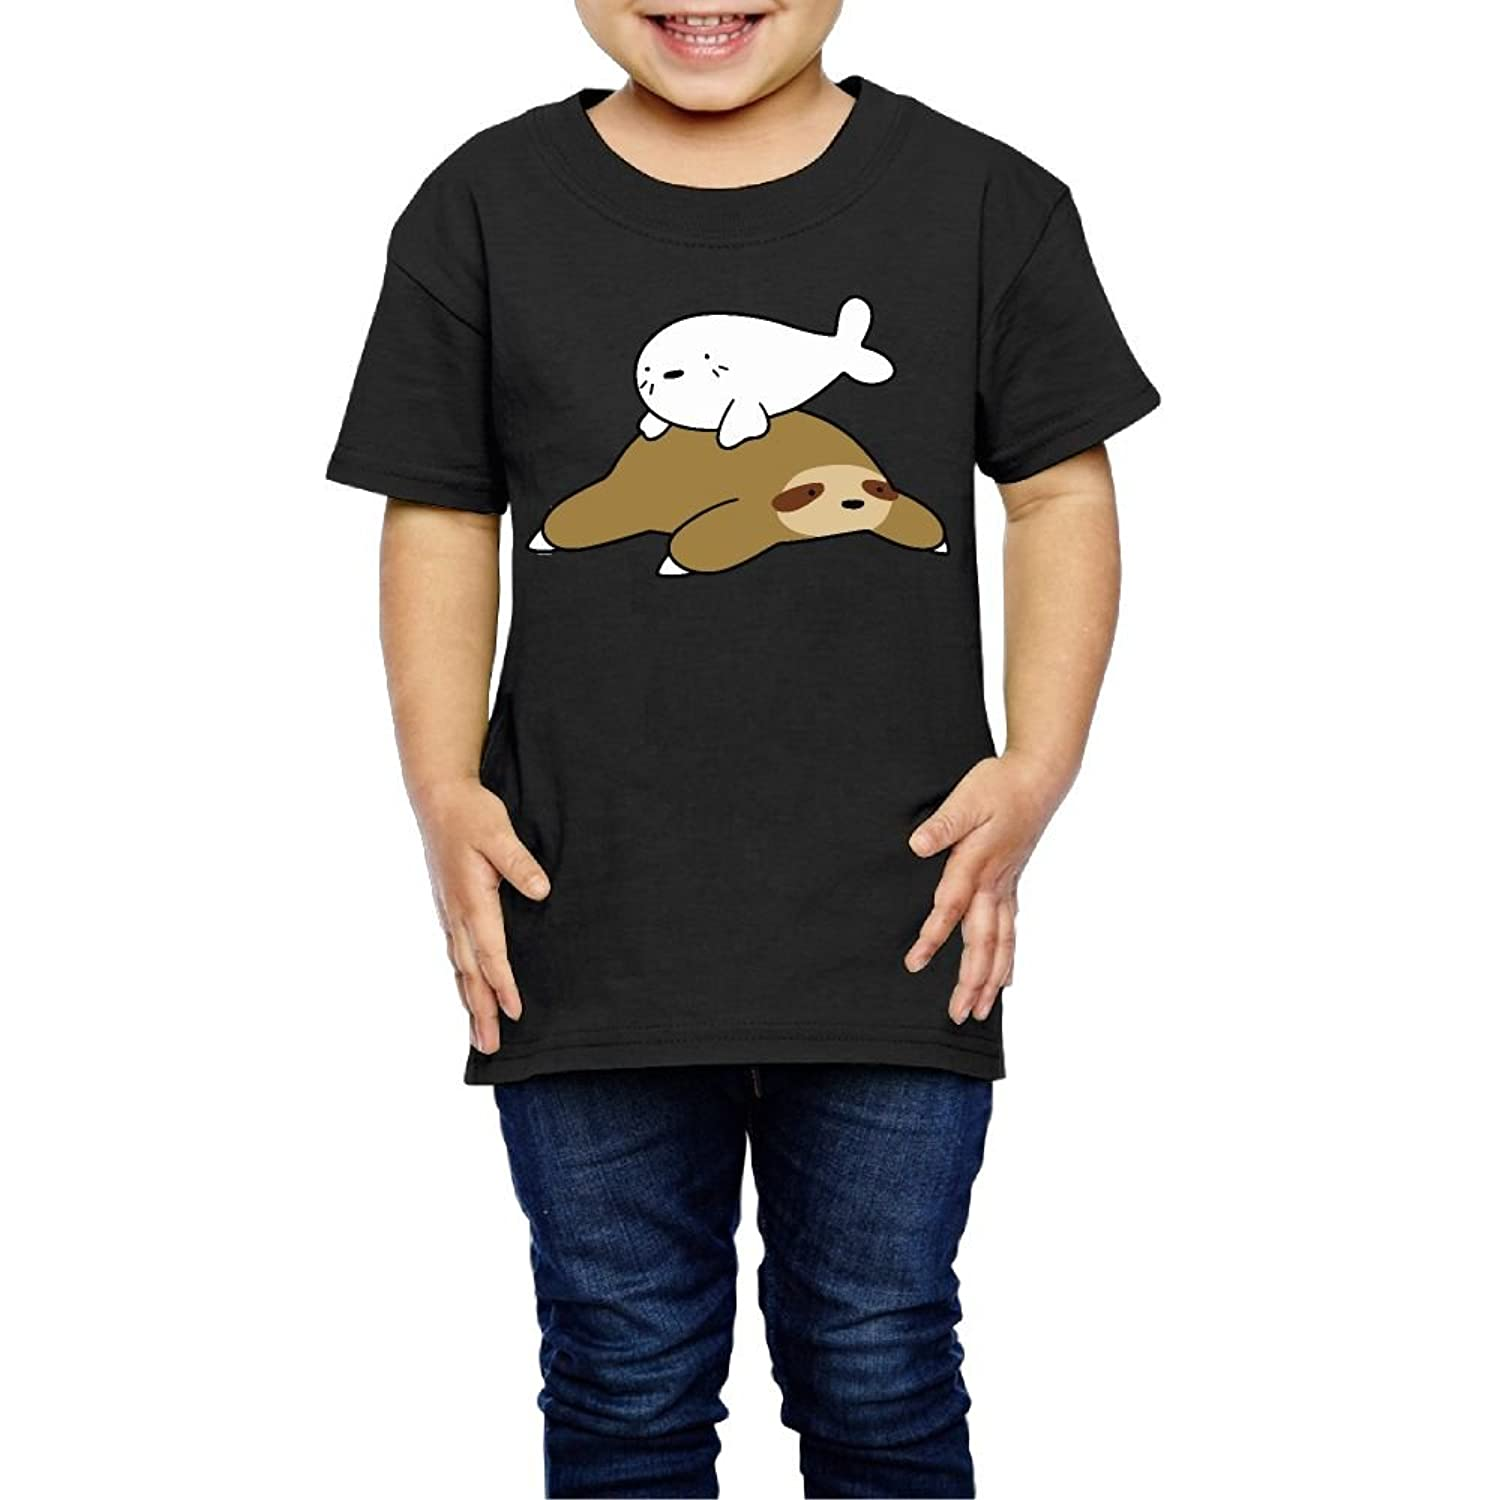 Tolder Aw2 Baby Harp Seal And Sloth Little Kid Graphic Tee 2 6